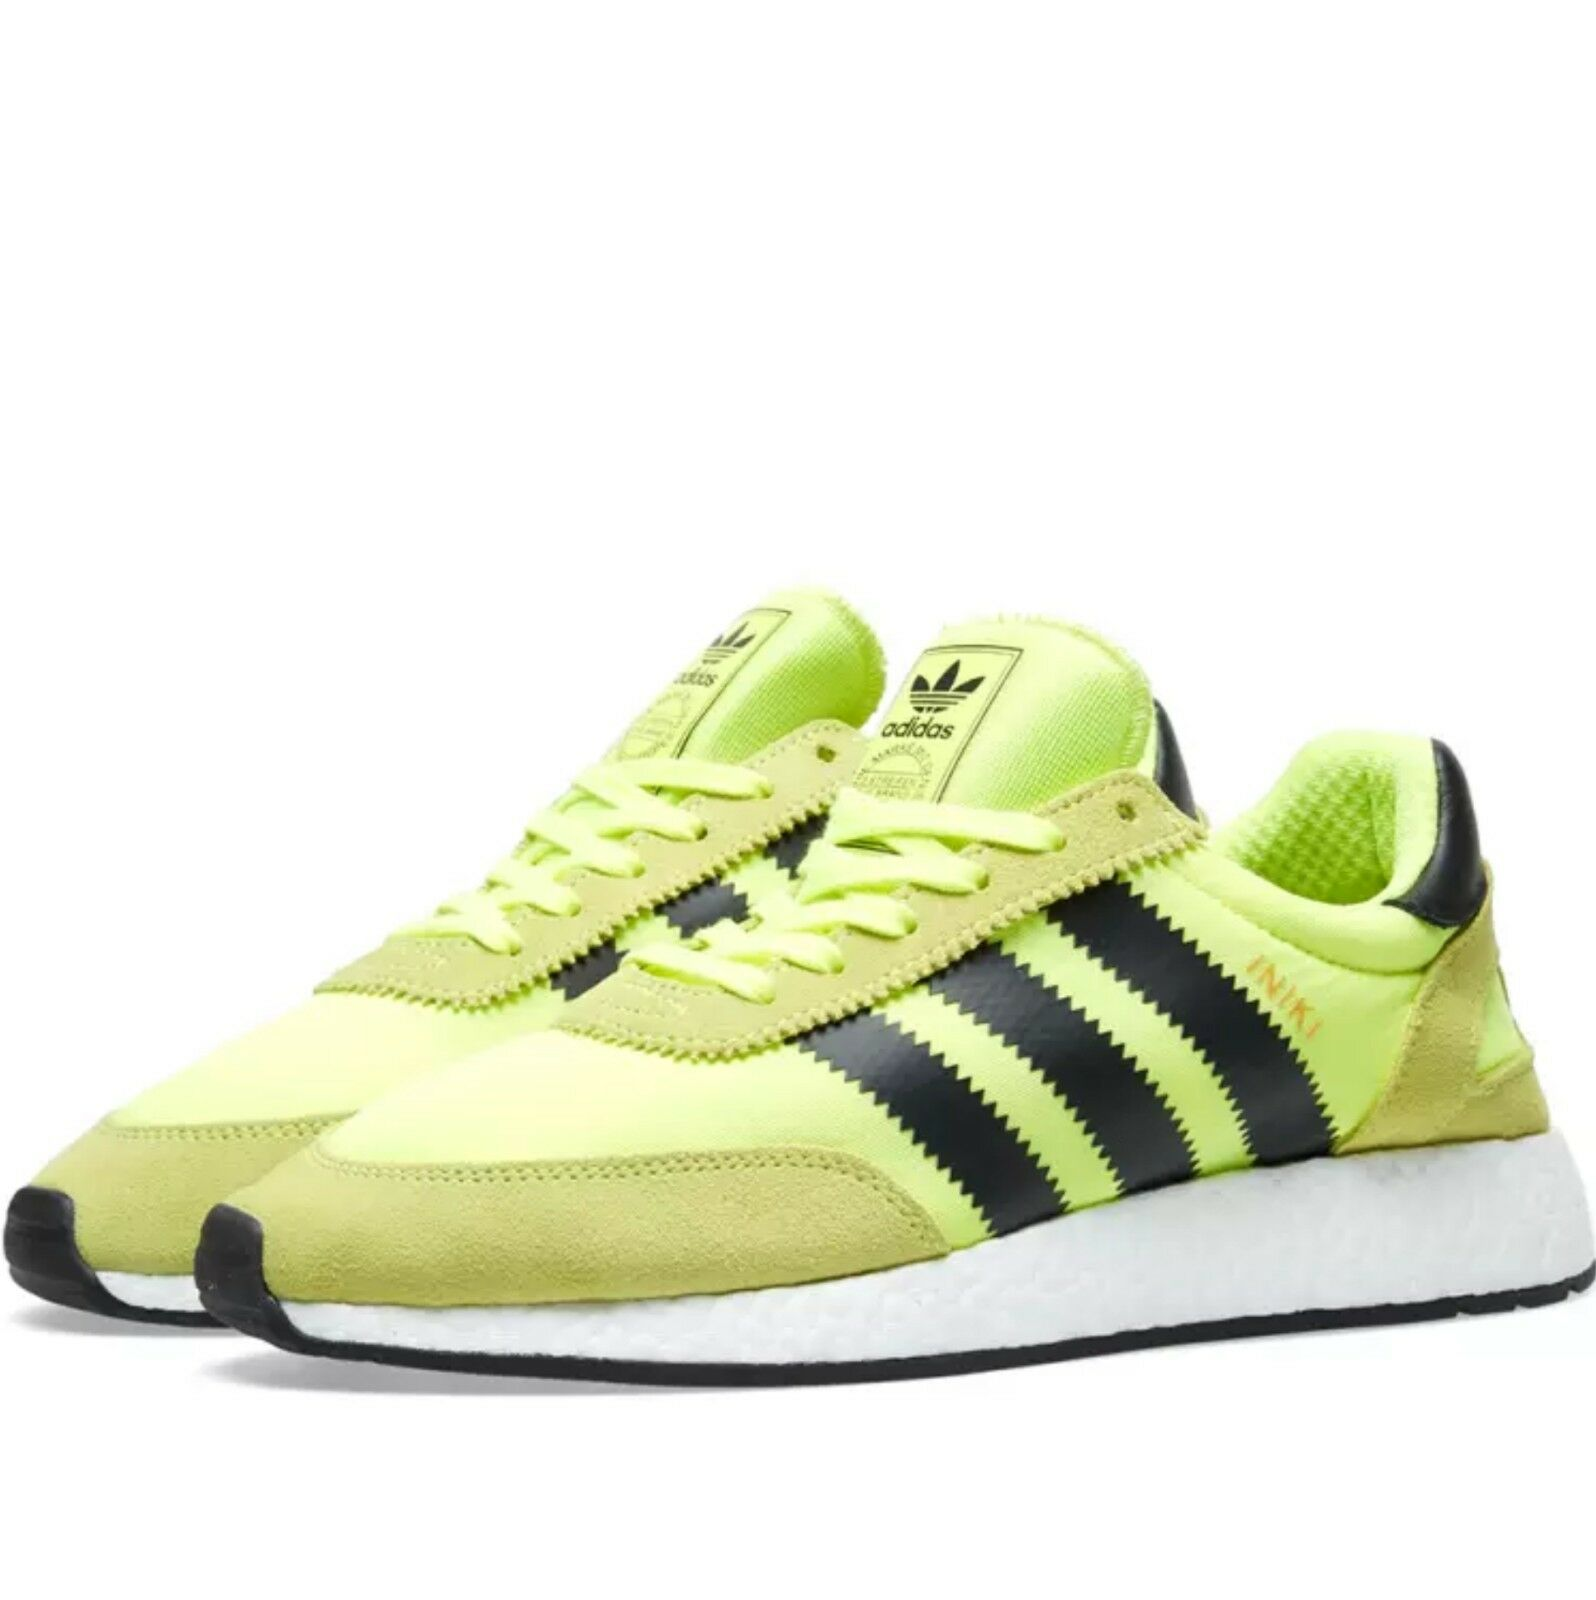 ee579acb7c85f Adidas Orinals INIKI Boost Sneaker Running shoes shoes shoes US 7 Solar  Yellow Black BB2094 d4b375